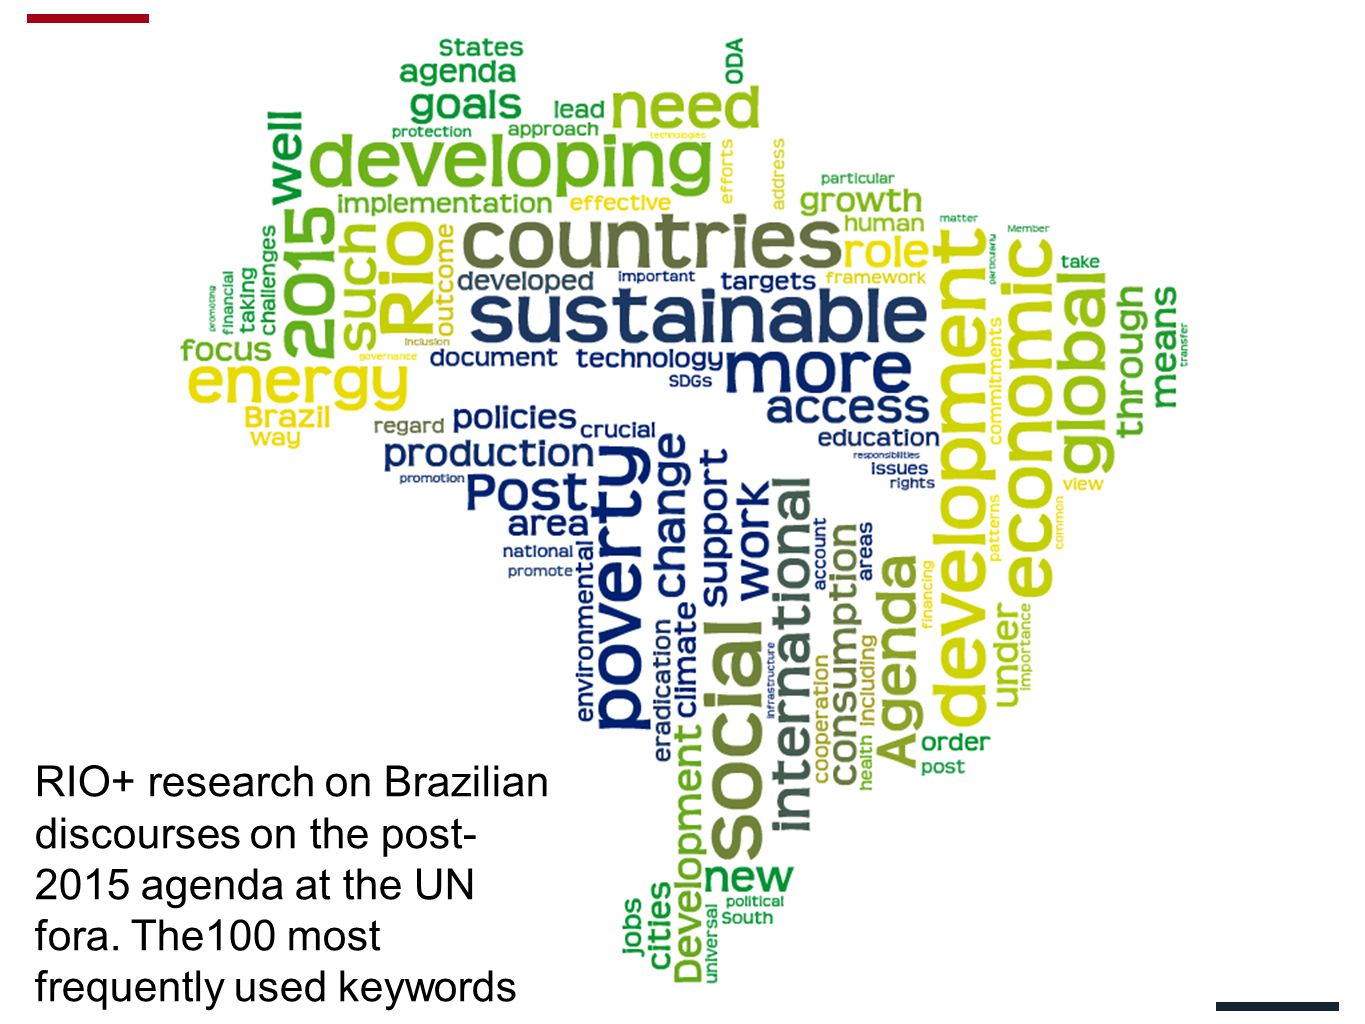 RIO+ research on Brazilian discourses on the post- 2015 agenda at the UN fora.